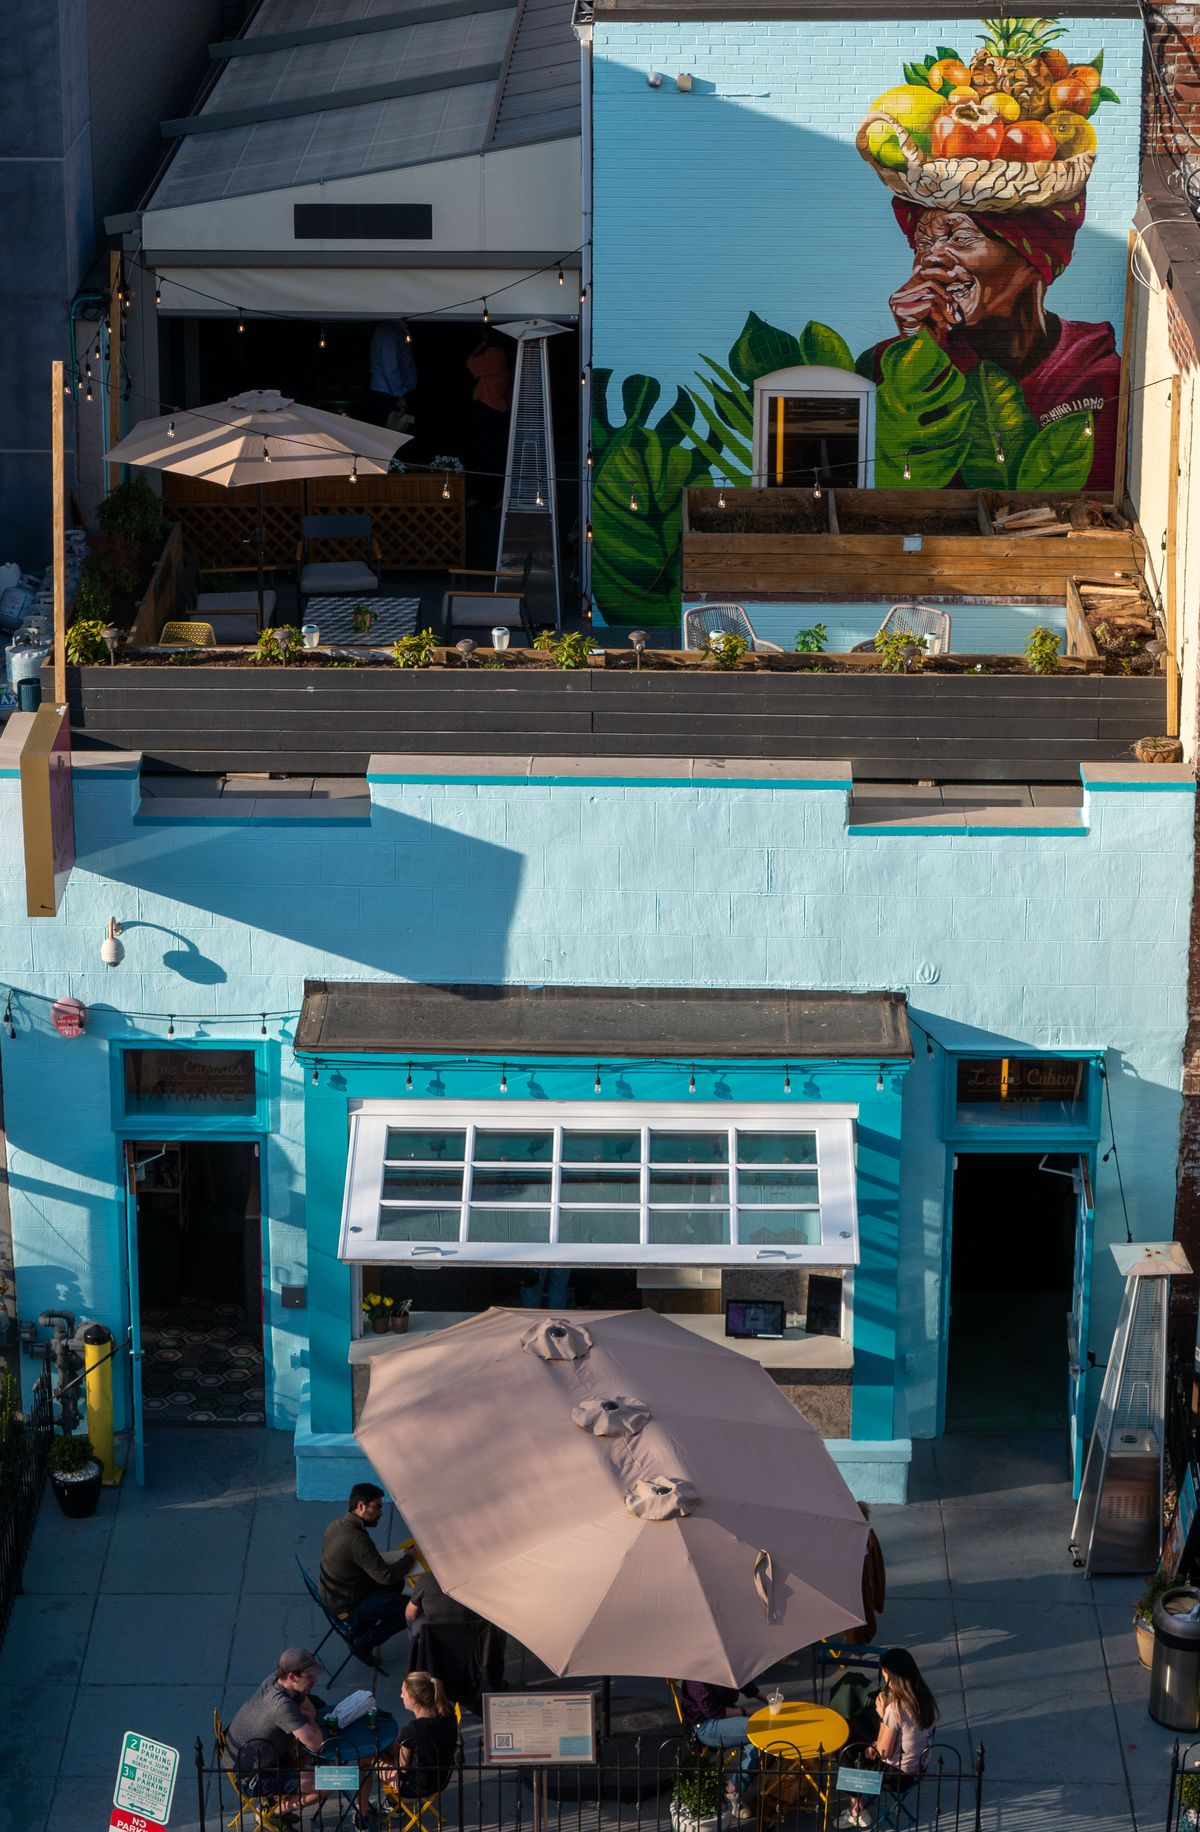 Colada Shop has a new mural on its rooftop bar